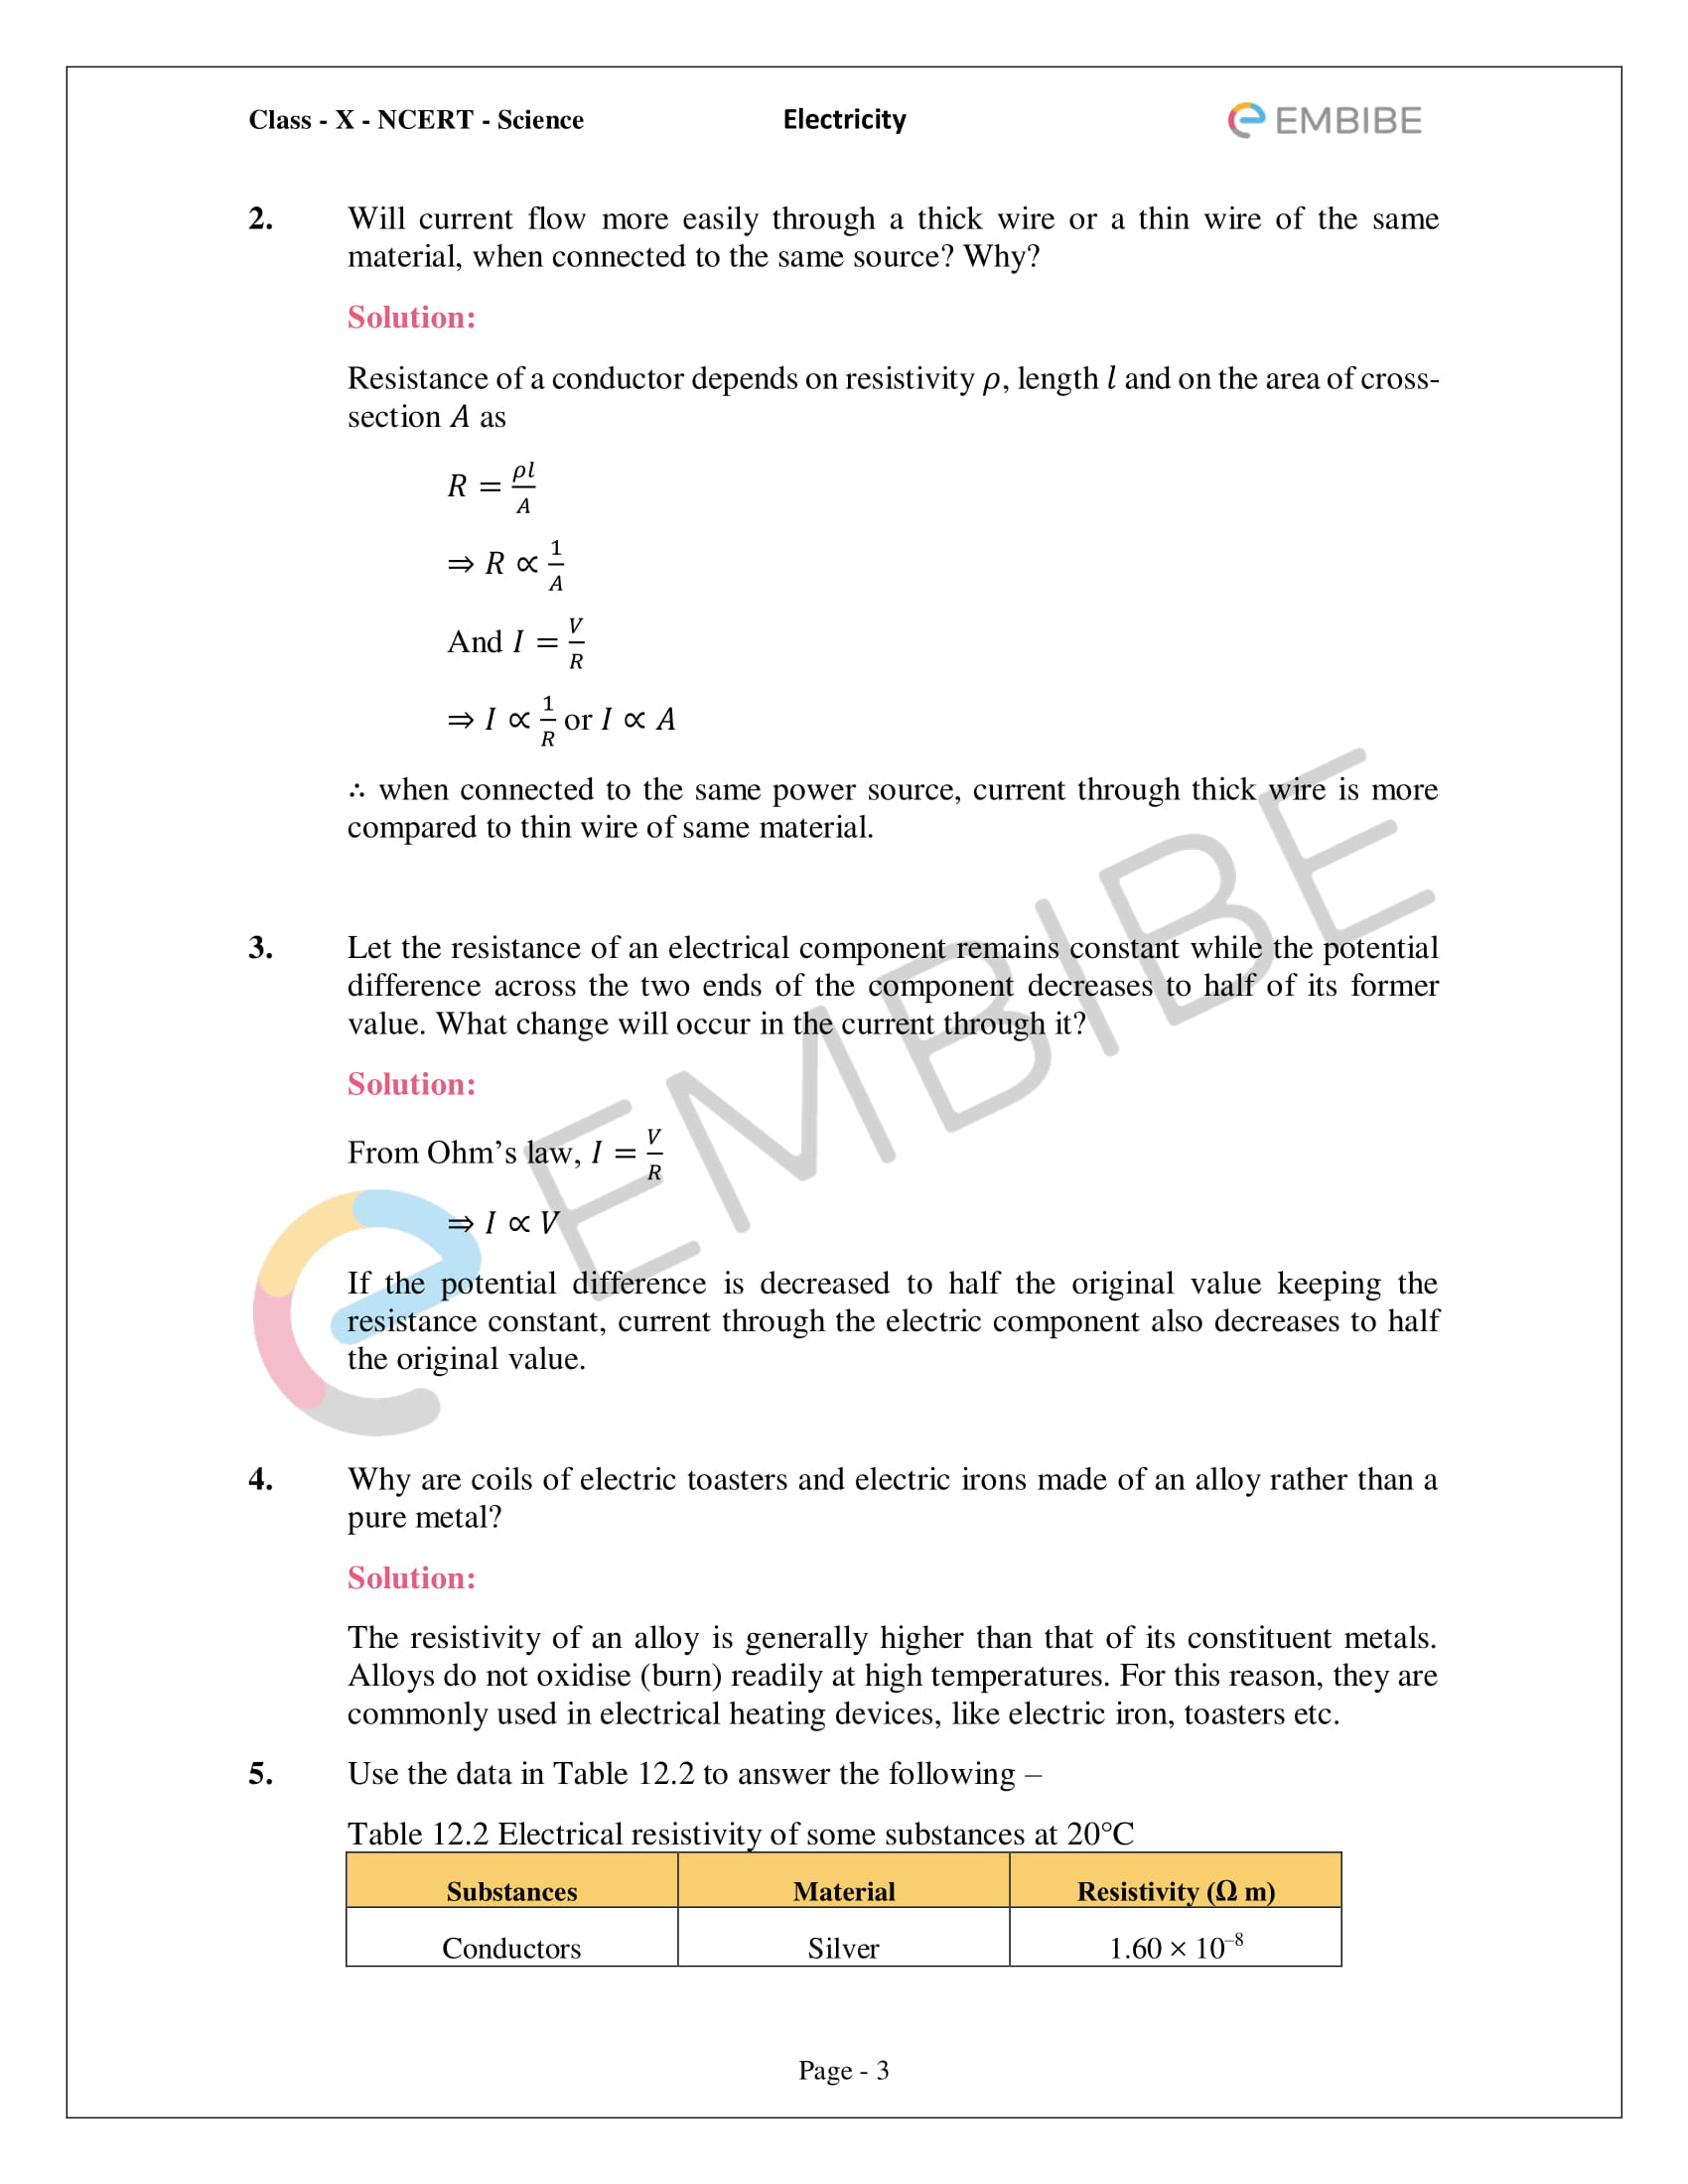 CBSE NCERT Solutions For Class 10 Science Chapter 12 - Electricity - 3